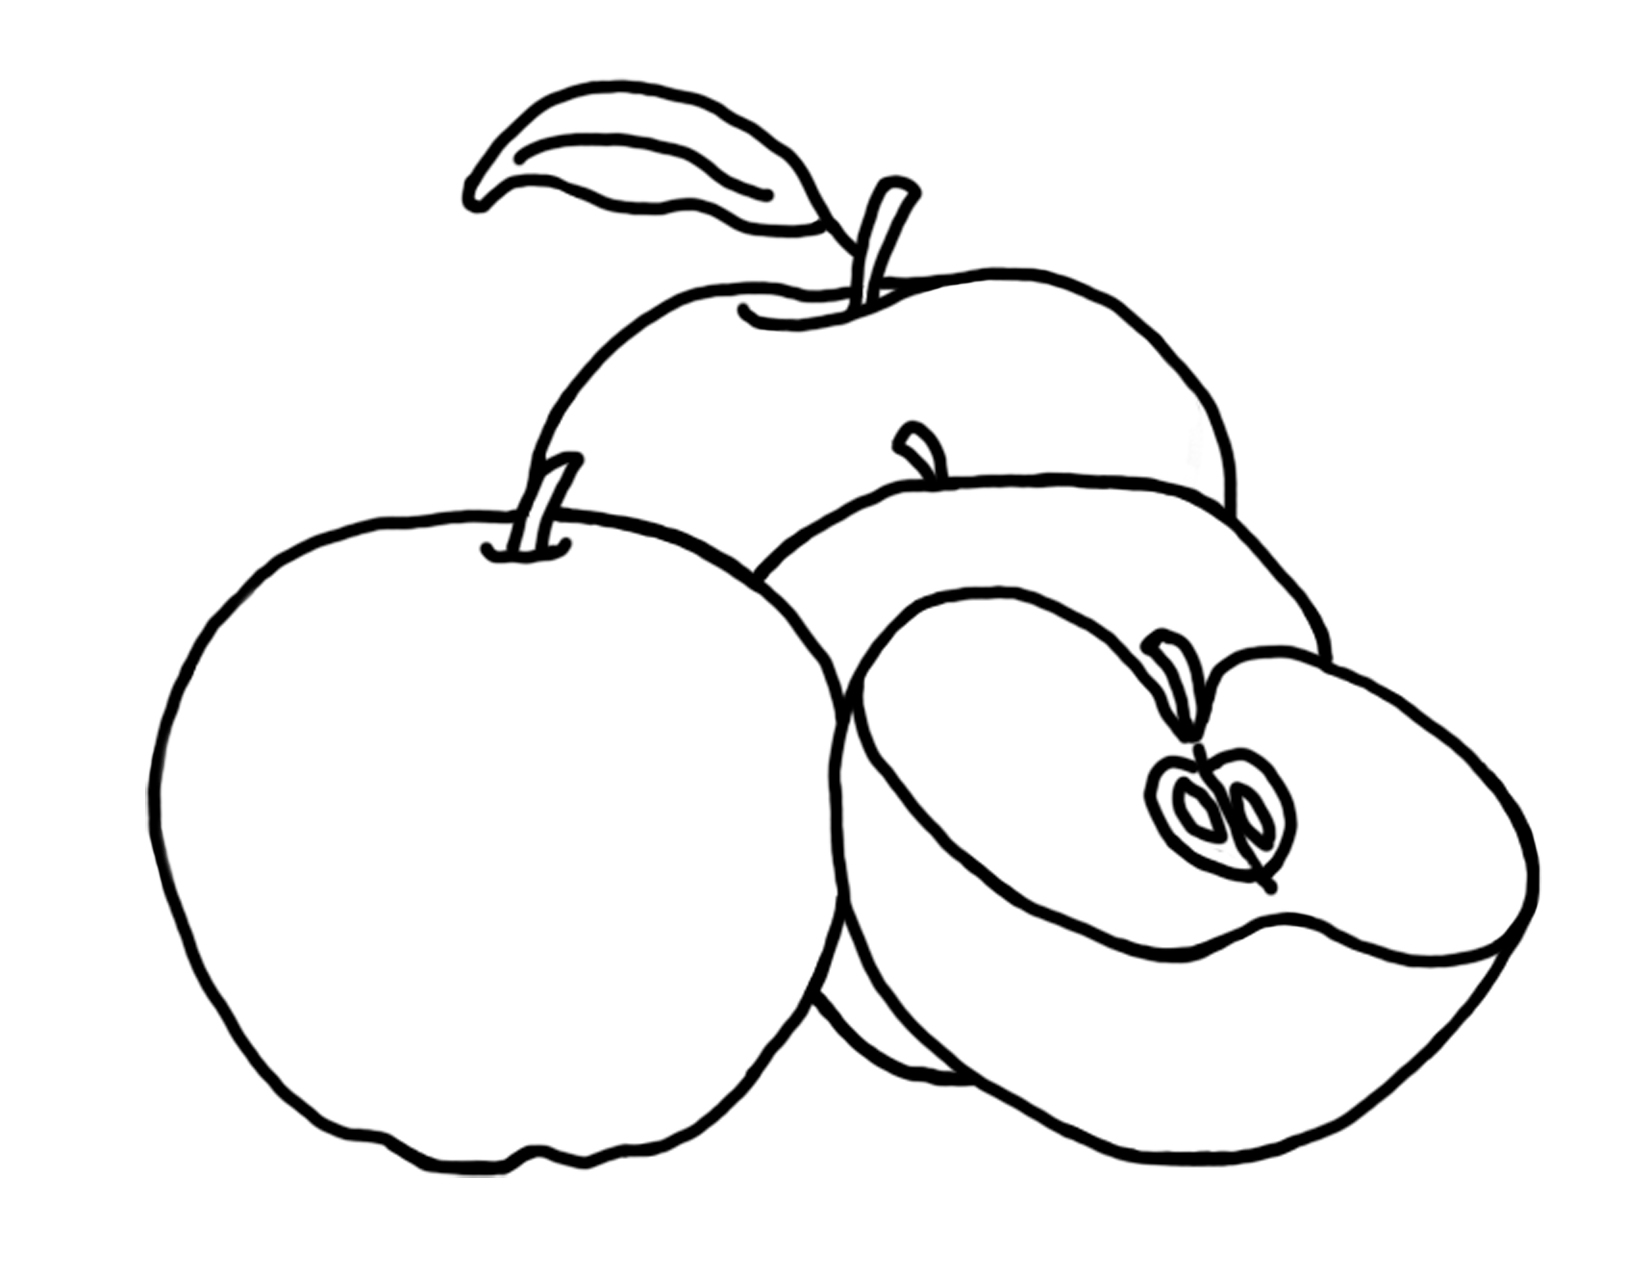 Coloring sheets of fruit trees - Apples Coloring Pages Pictures